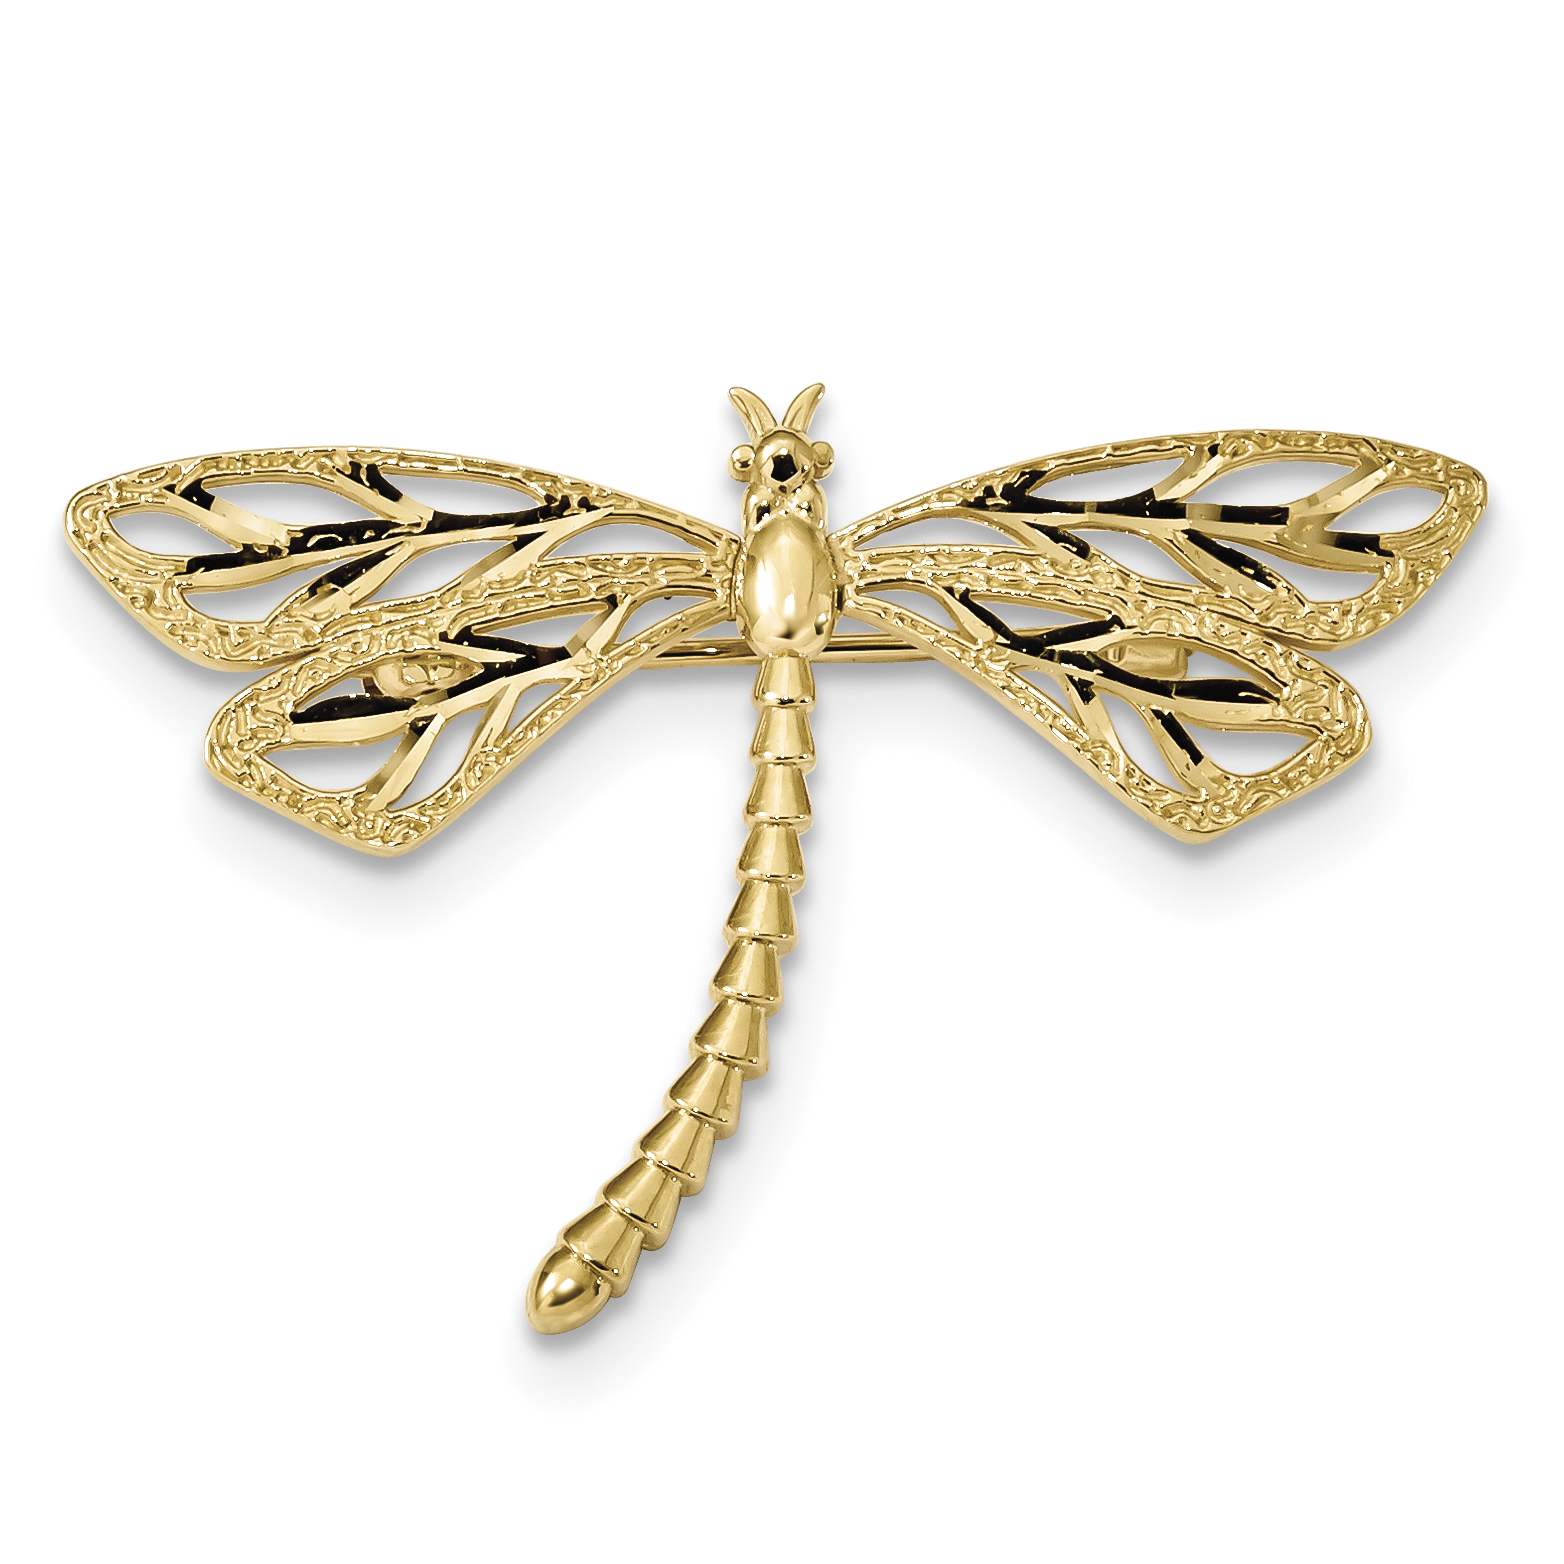 14K Diamond-cut Polished & Satin Dragonfly Pin by Core Gold